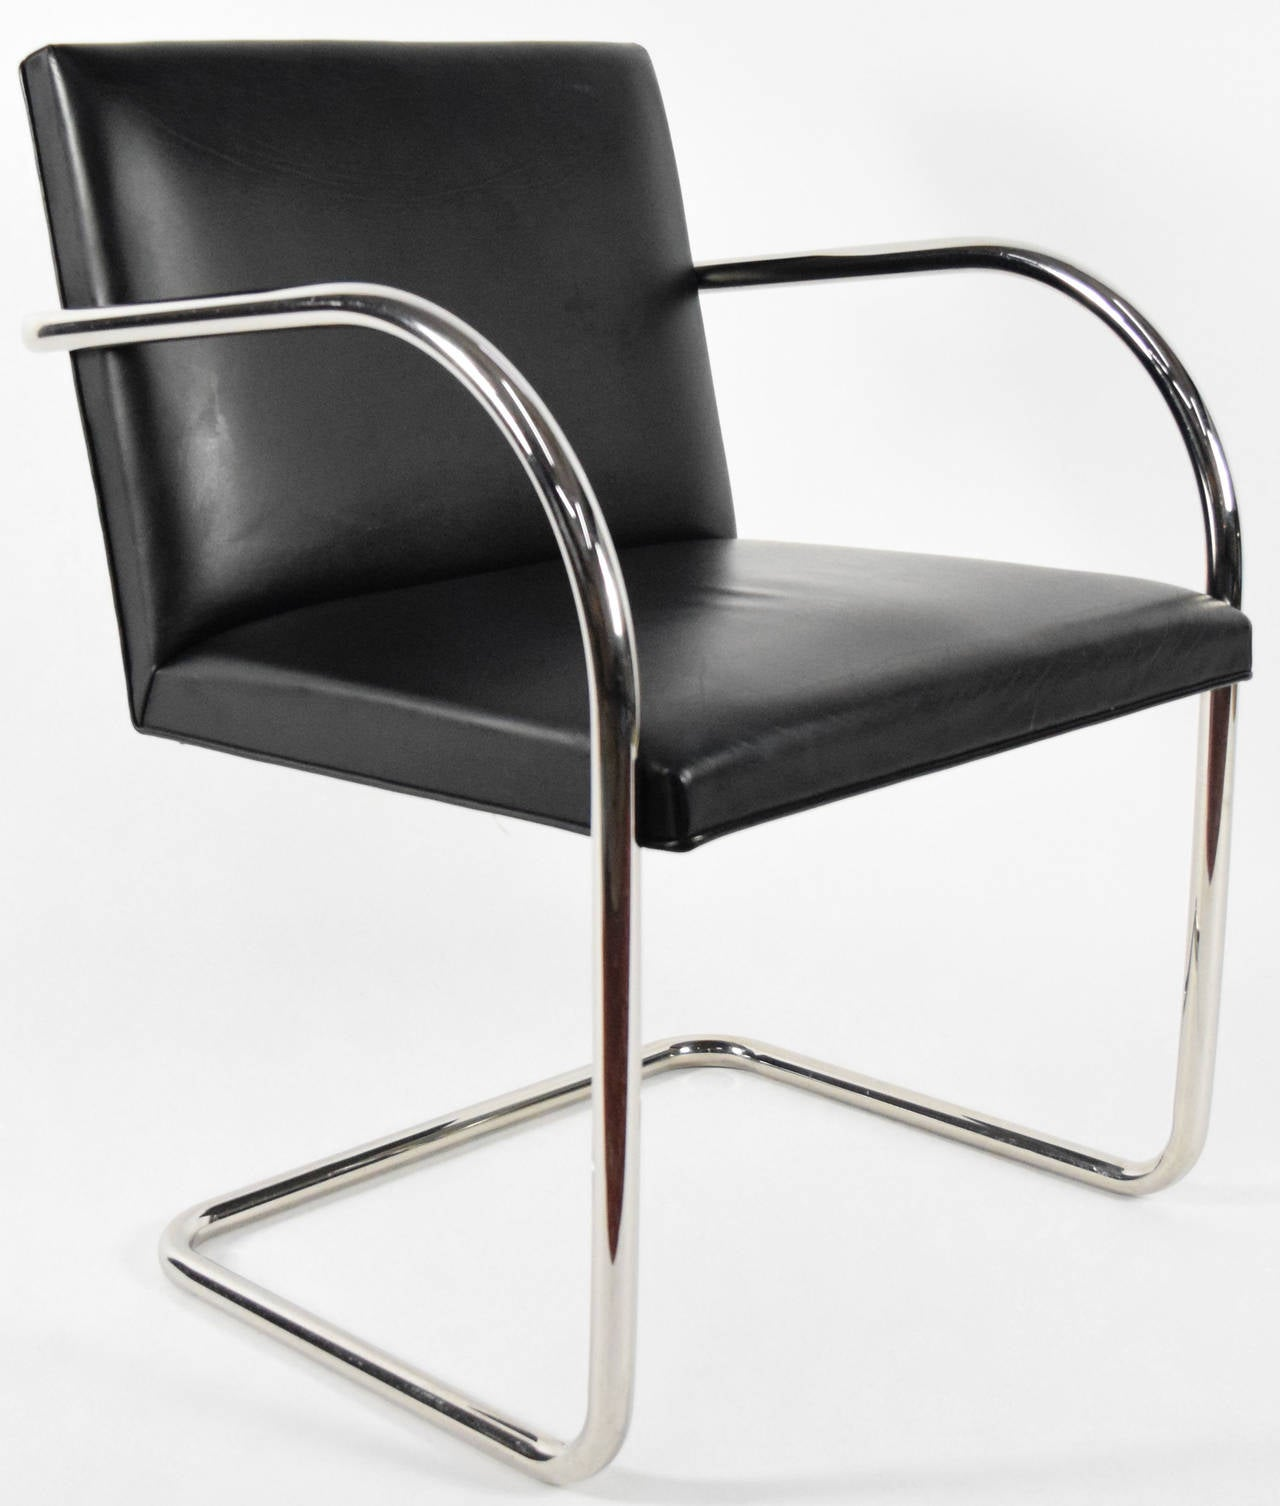 Tubular Brno Chair in Black Leather by Knoll For Sale at 1stdibs